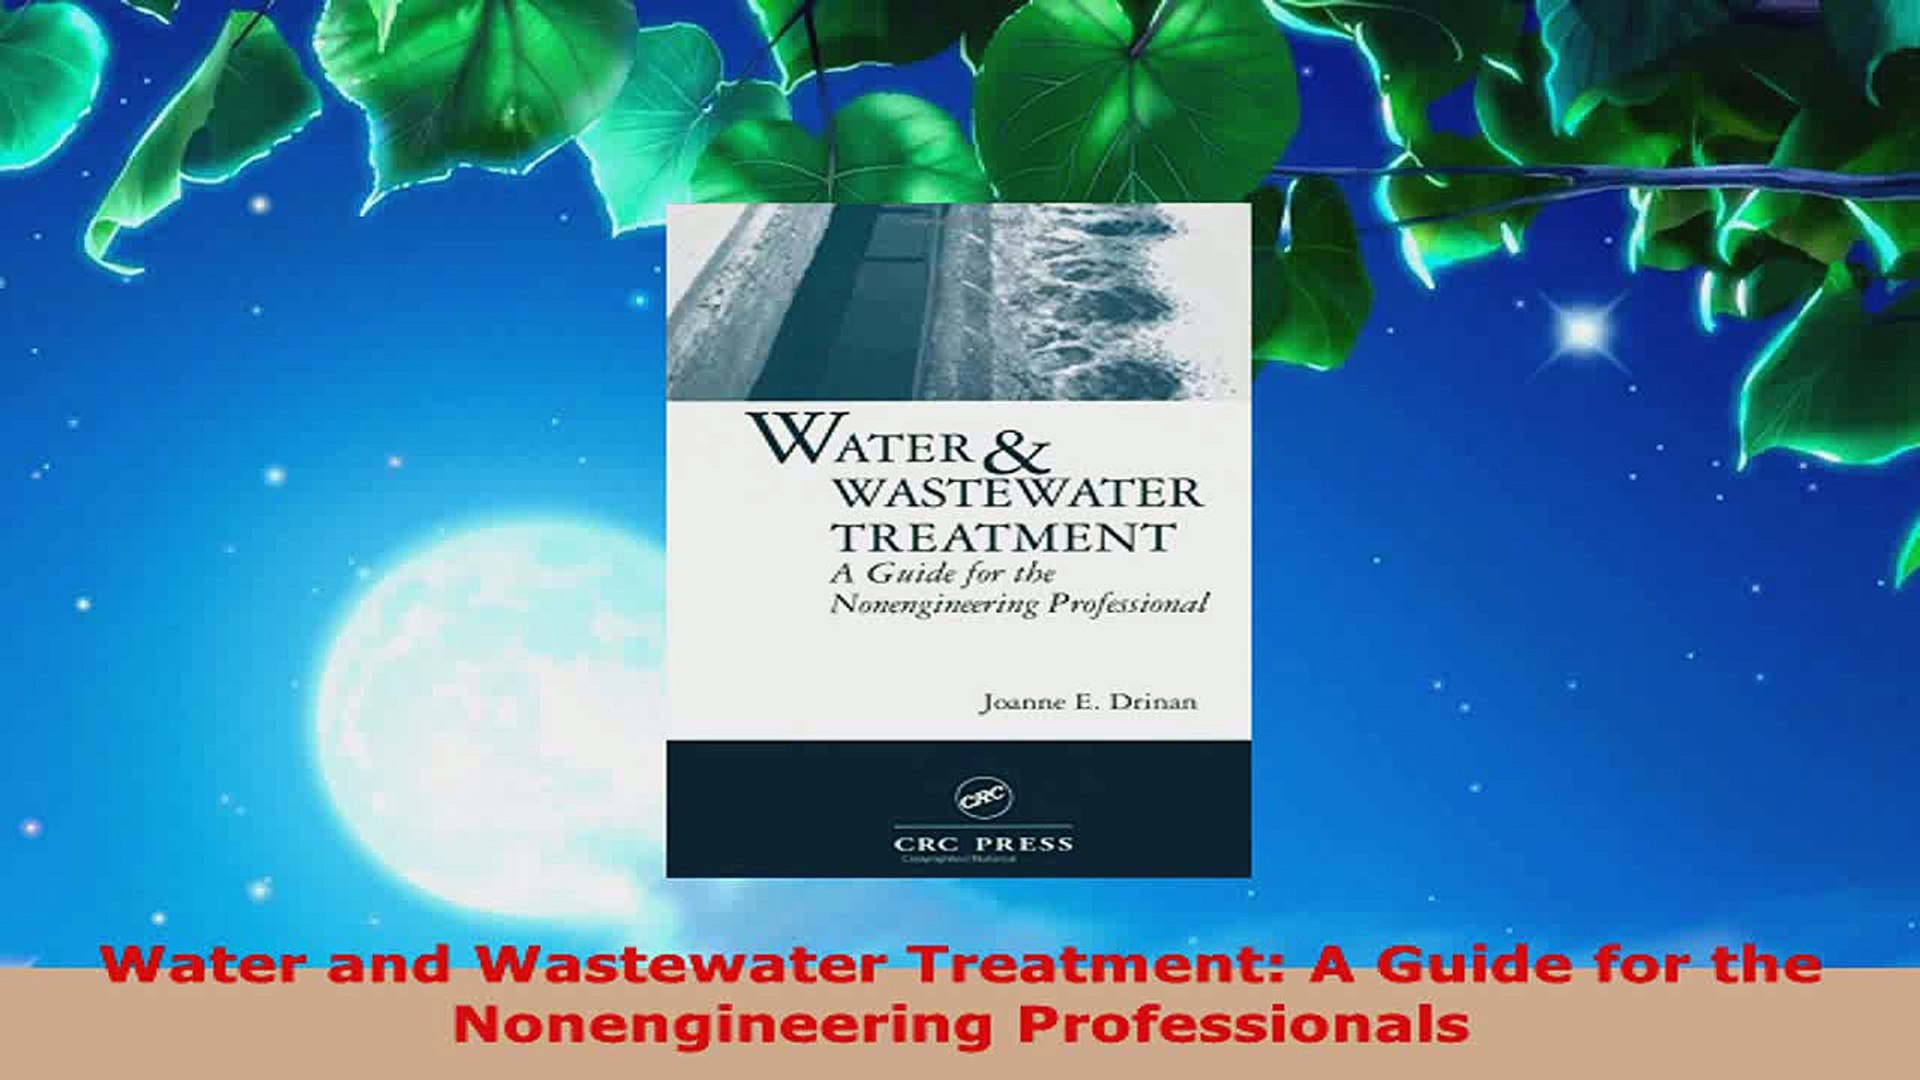 A Guide for the Nonengineering Professional Second Edition Water and Wastewater Treatment